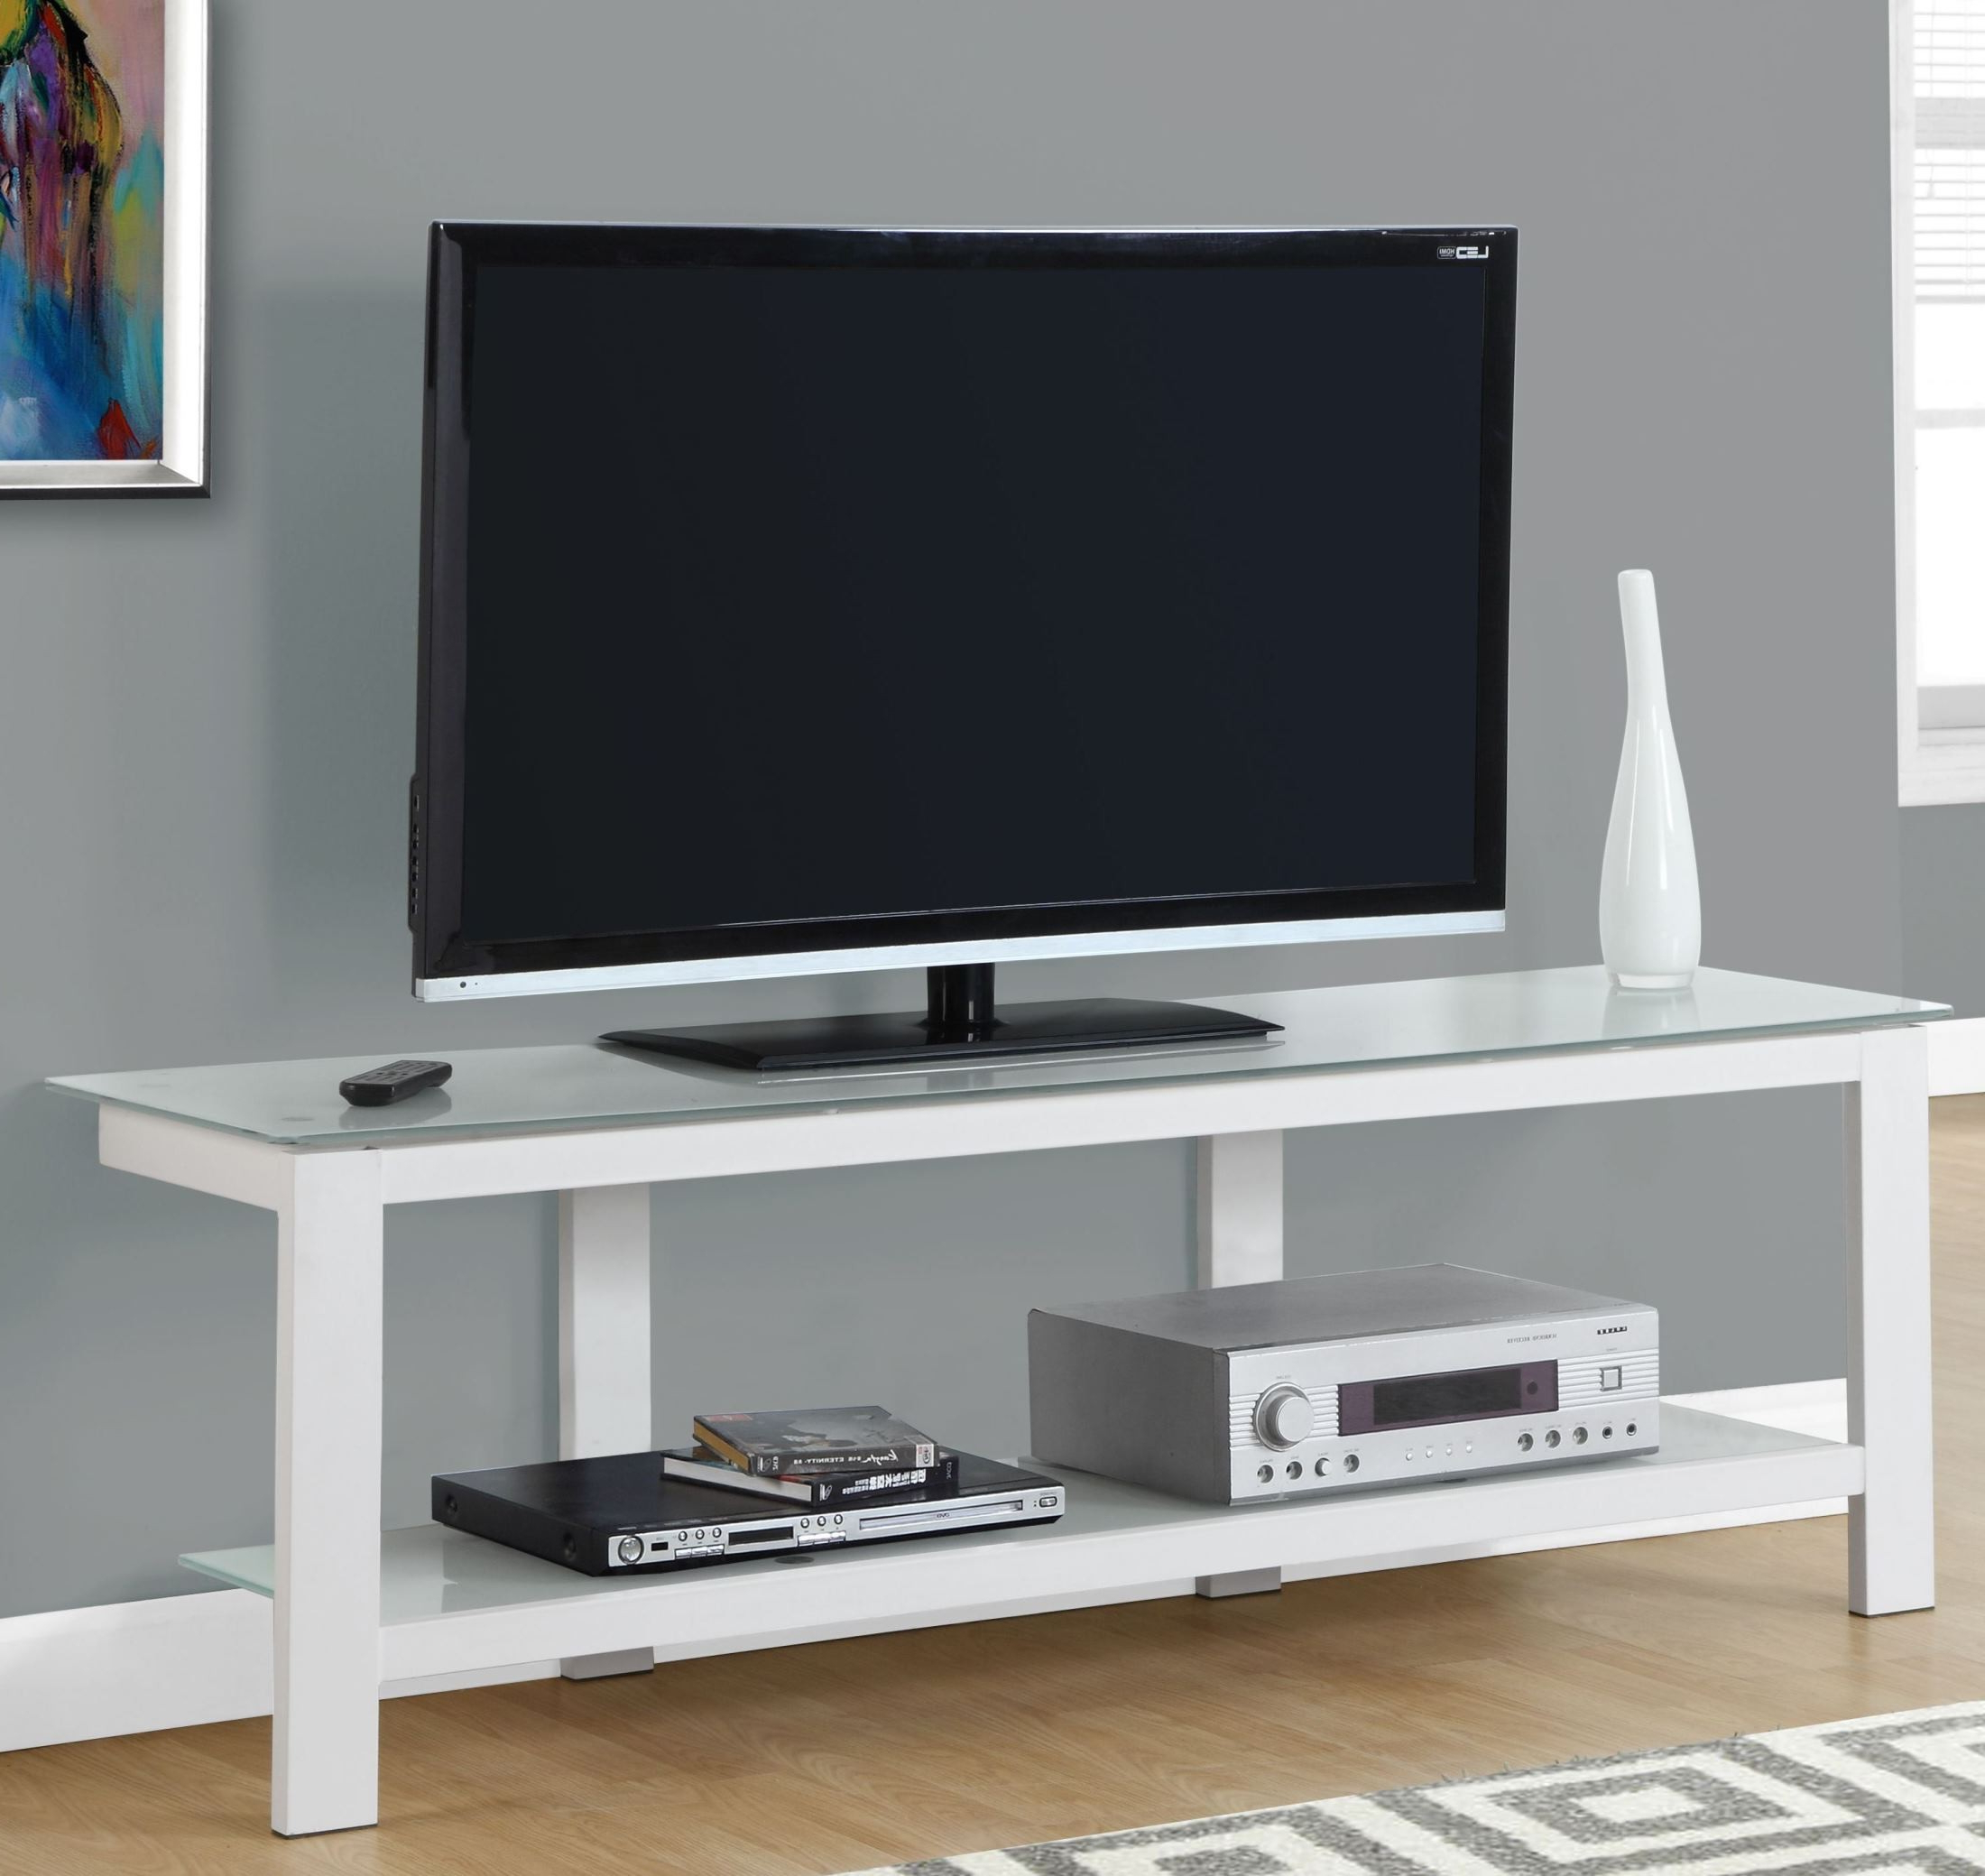 """White Frosted Tempered Glass 60"""" Tv Stand From Monarch Intended For Glass Shelves Tv Stands (View 10 of 20)"""